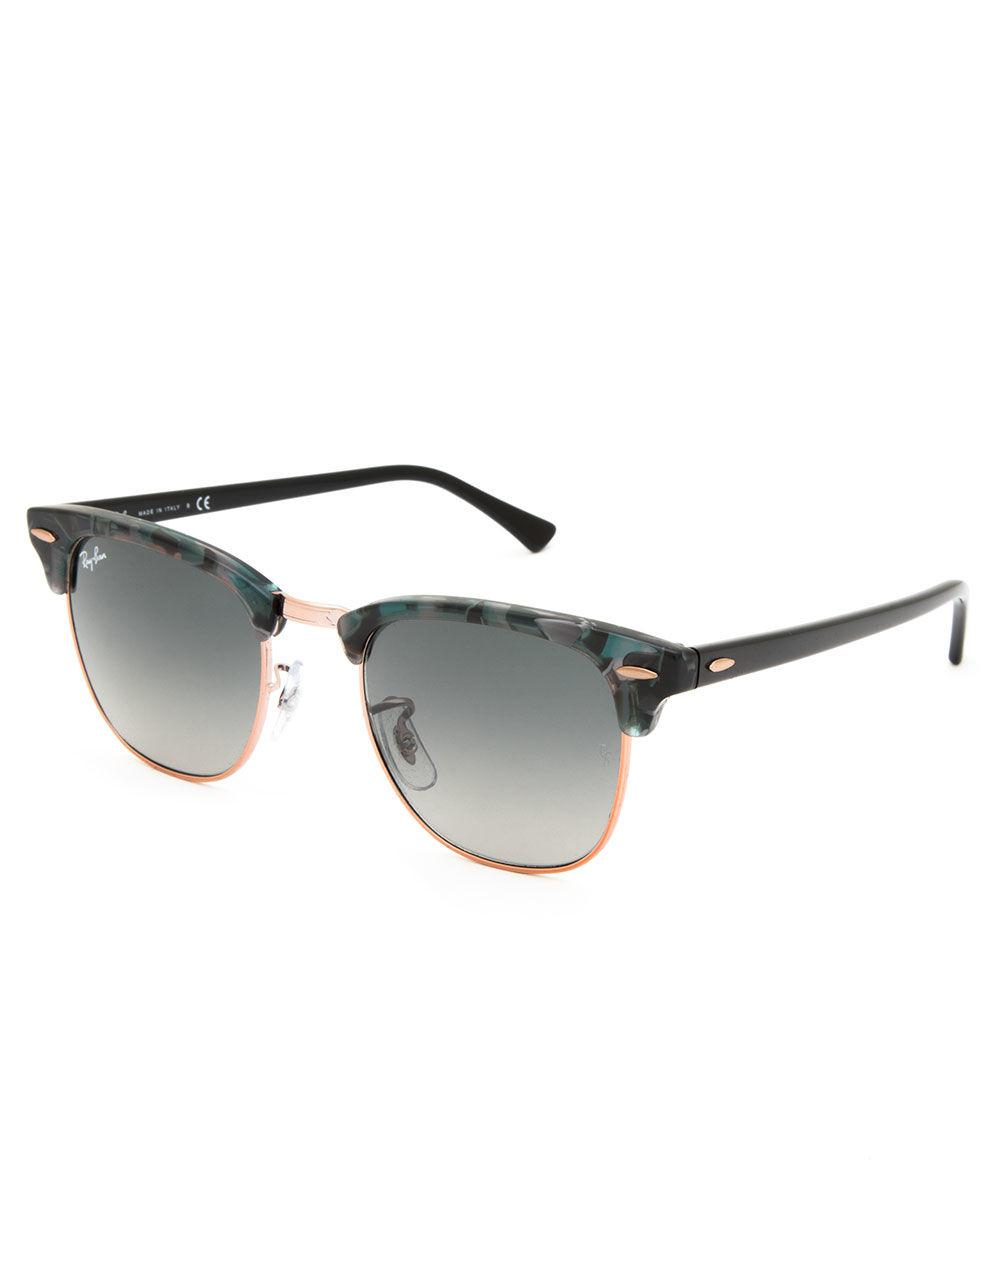 5af5e46d40ecb Ray-Ban Clubmaster Fleck Spotted Gray   Green Sunglasses in Green - Lyst